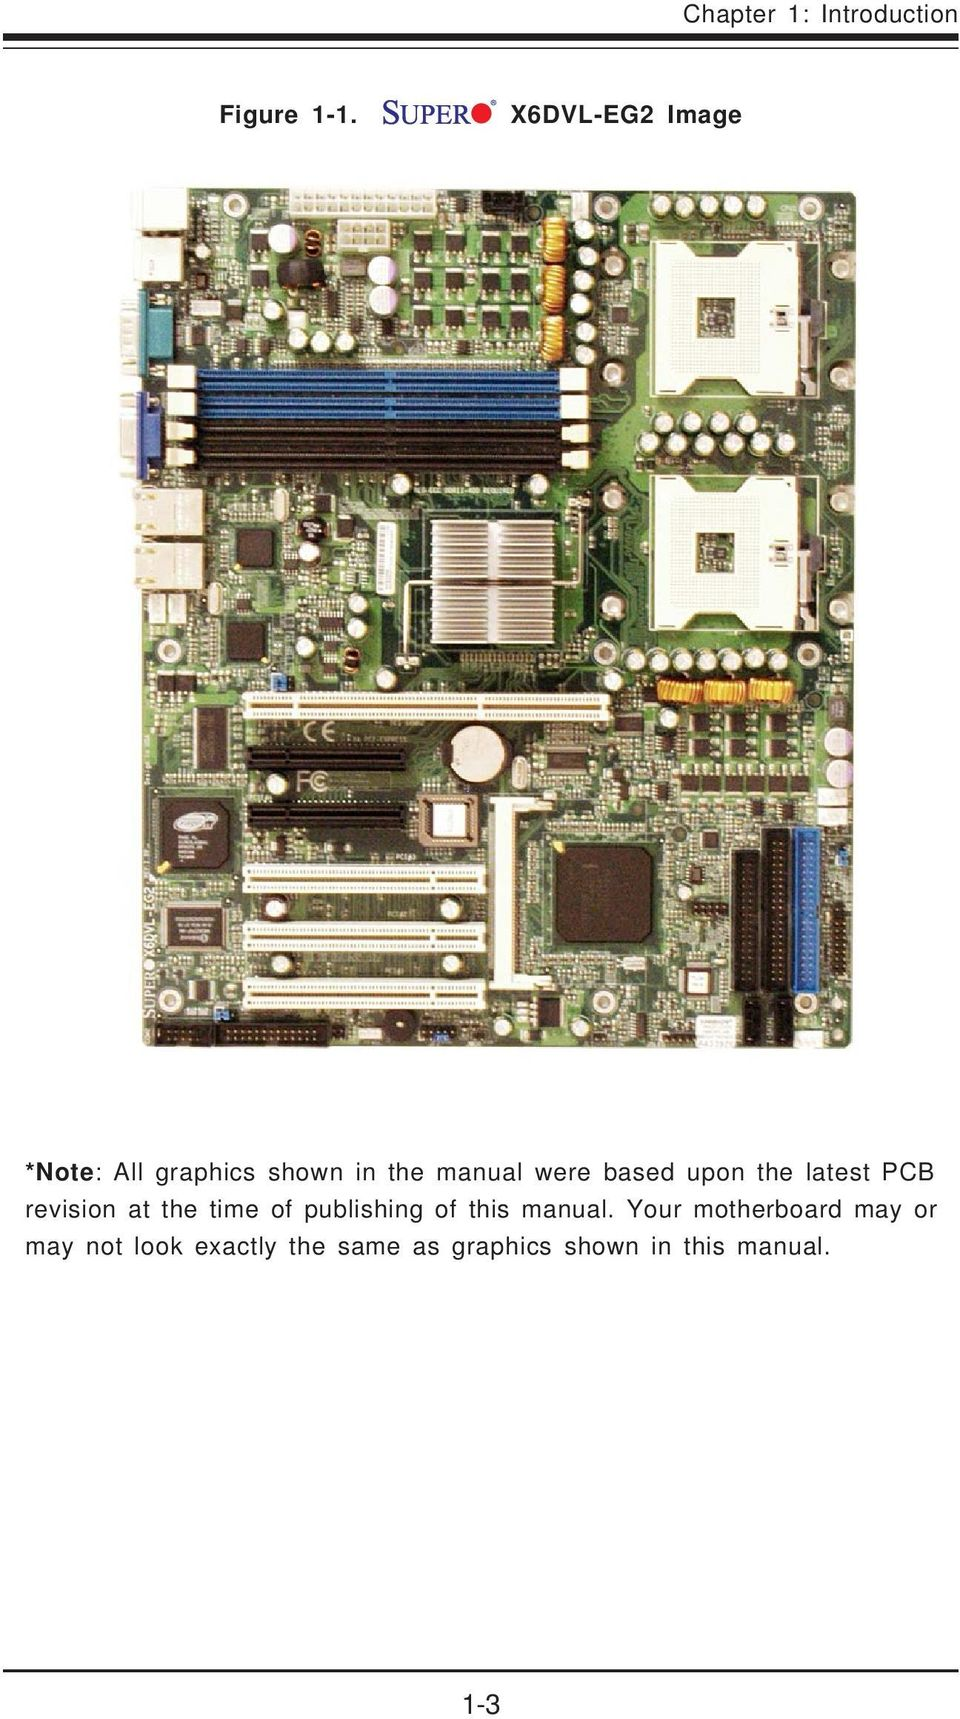 were based upon the latest PCB revision at the time of publishing of